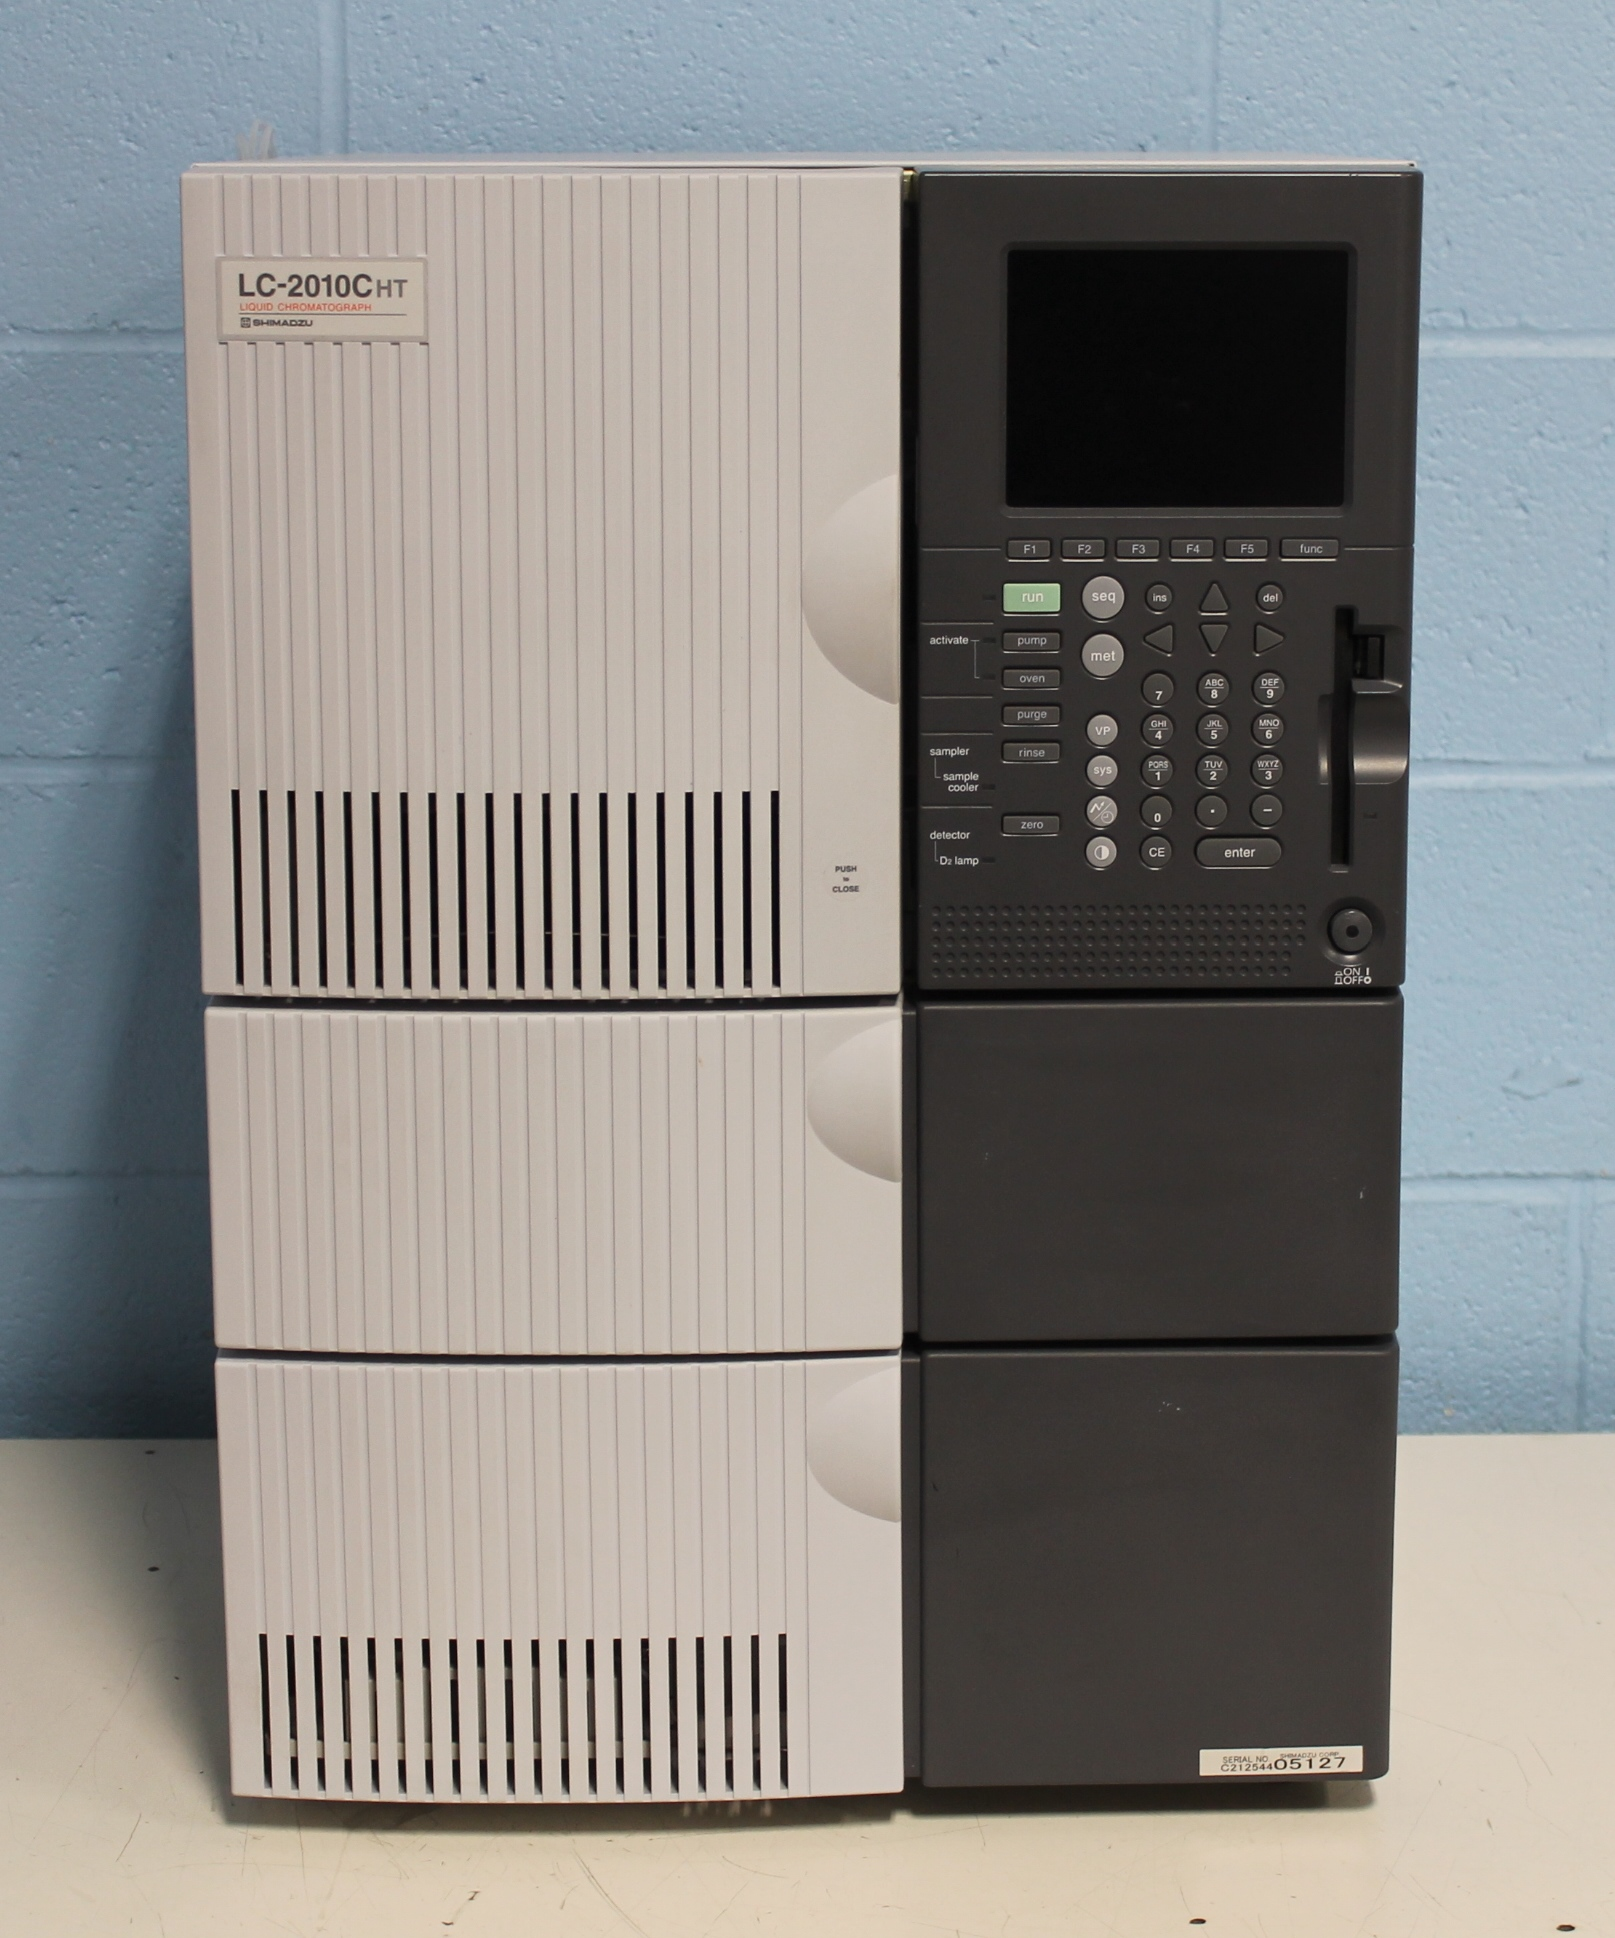 Compact Hplc System Refurbished Shimadzu Lc 2010cht Hplc System